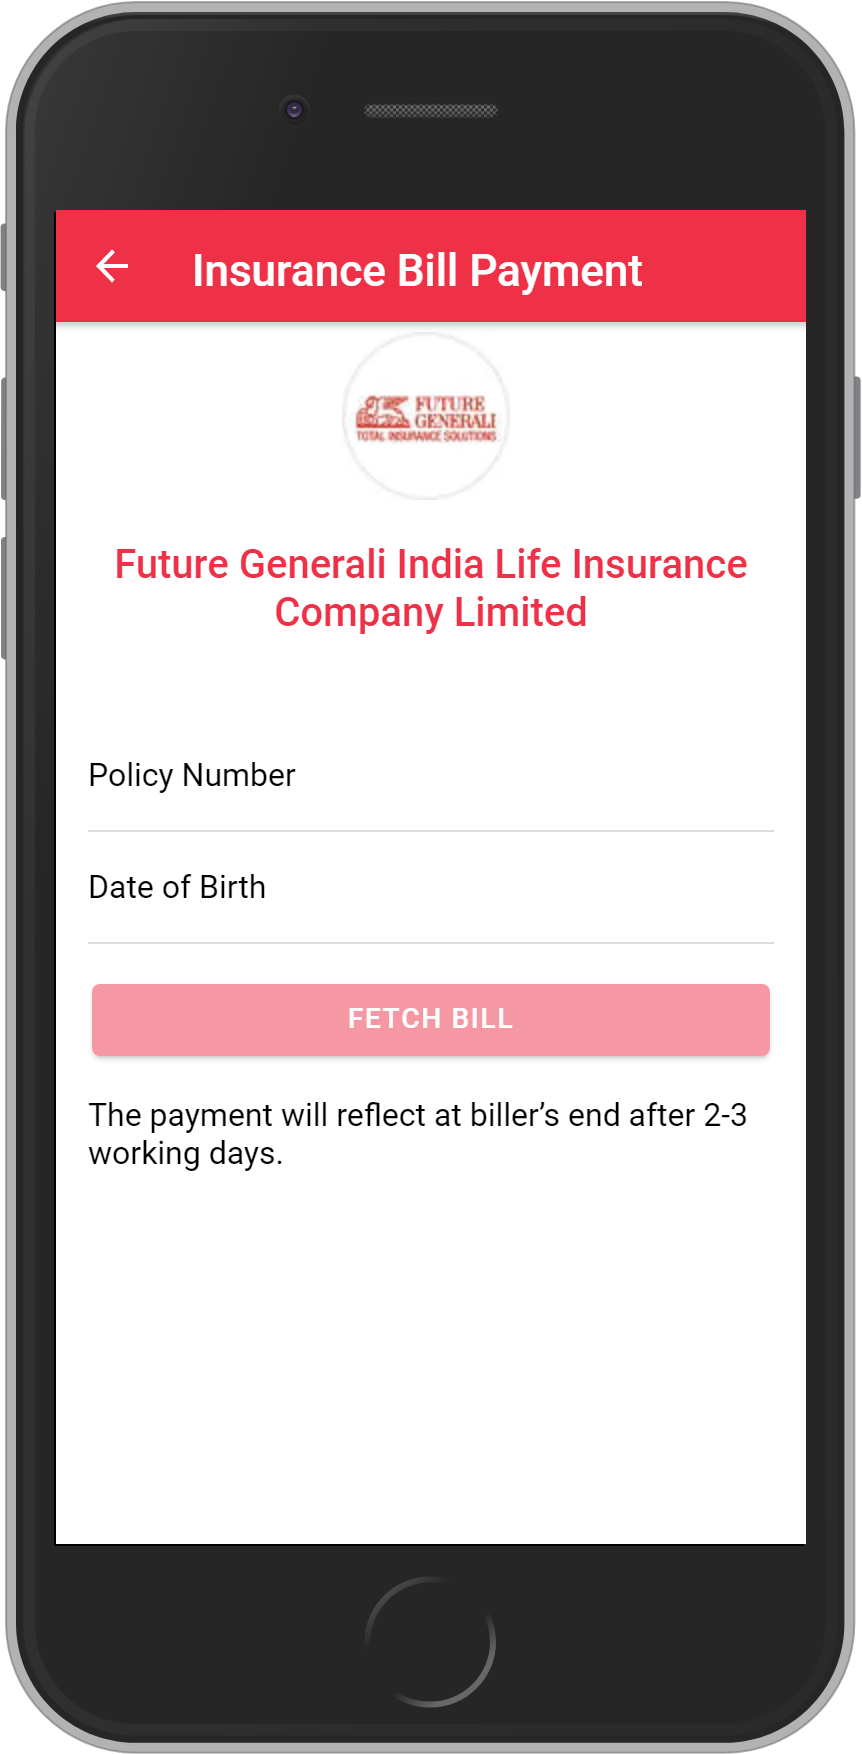 Get UNLIMITED <b>0.10%</b> CASHBACK on Future Generali India Life Insurance Company Limited Payment.